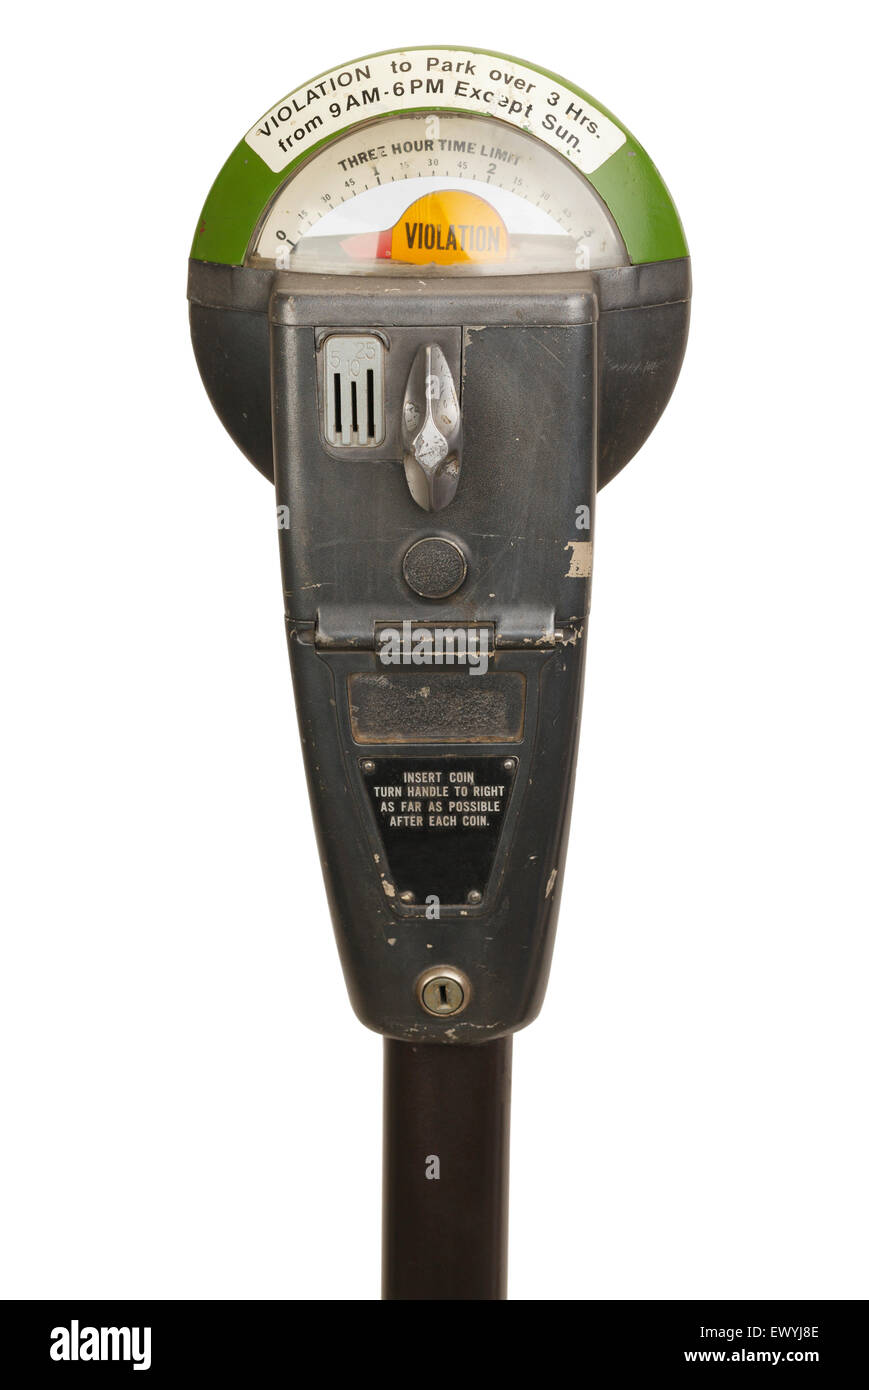 Old Violation Parking Meter Isolated on White Background. Stock Photo